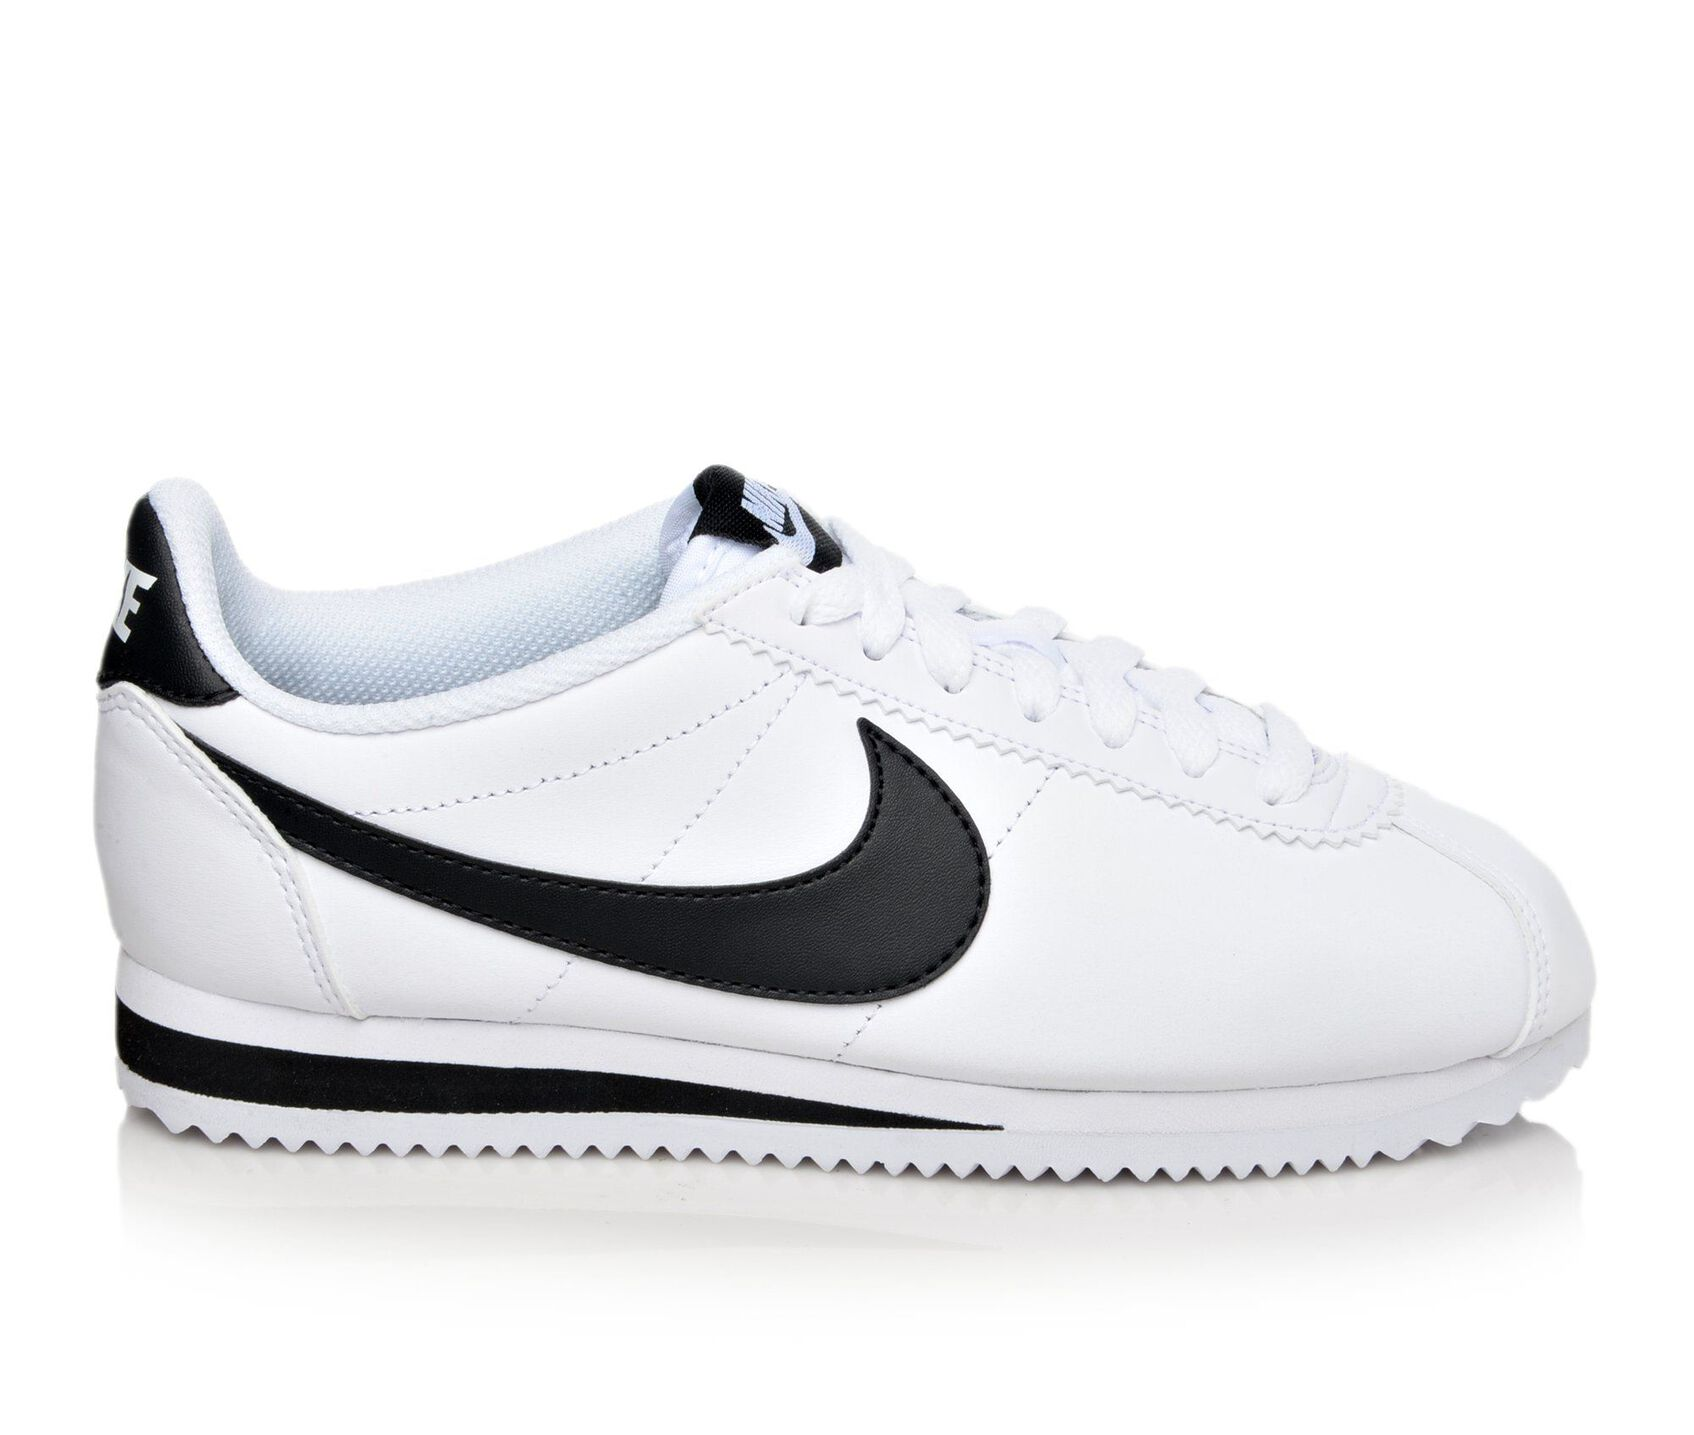 sold worldwide new product great quality Women's Nike Classic Cortez Leather Sneakers